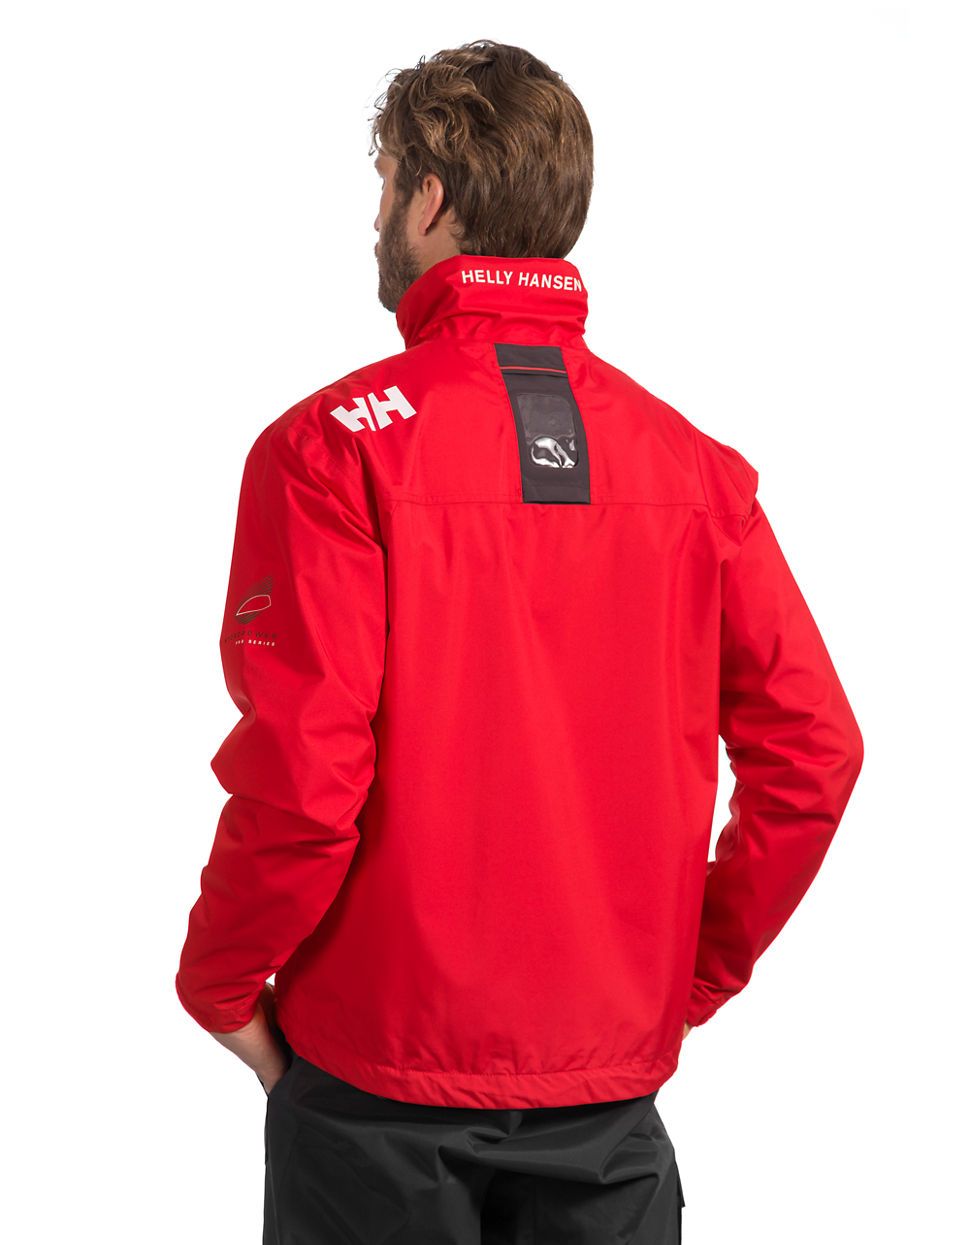 helly hansen crew midlayer jacket in red for men lyst. Black Bedroom Furniture Sets. Home Design Ideas